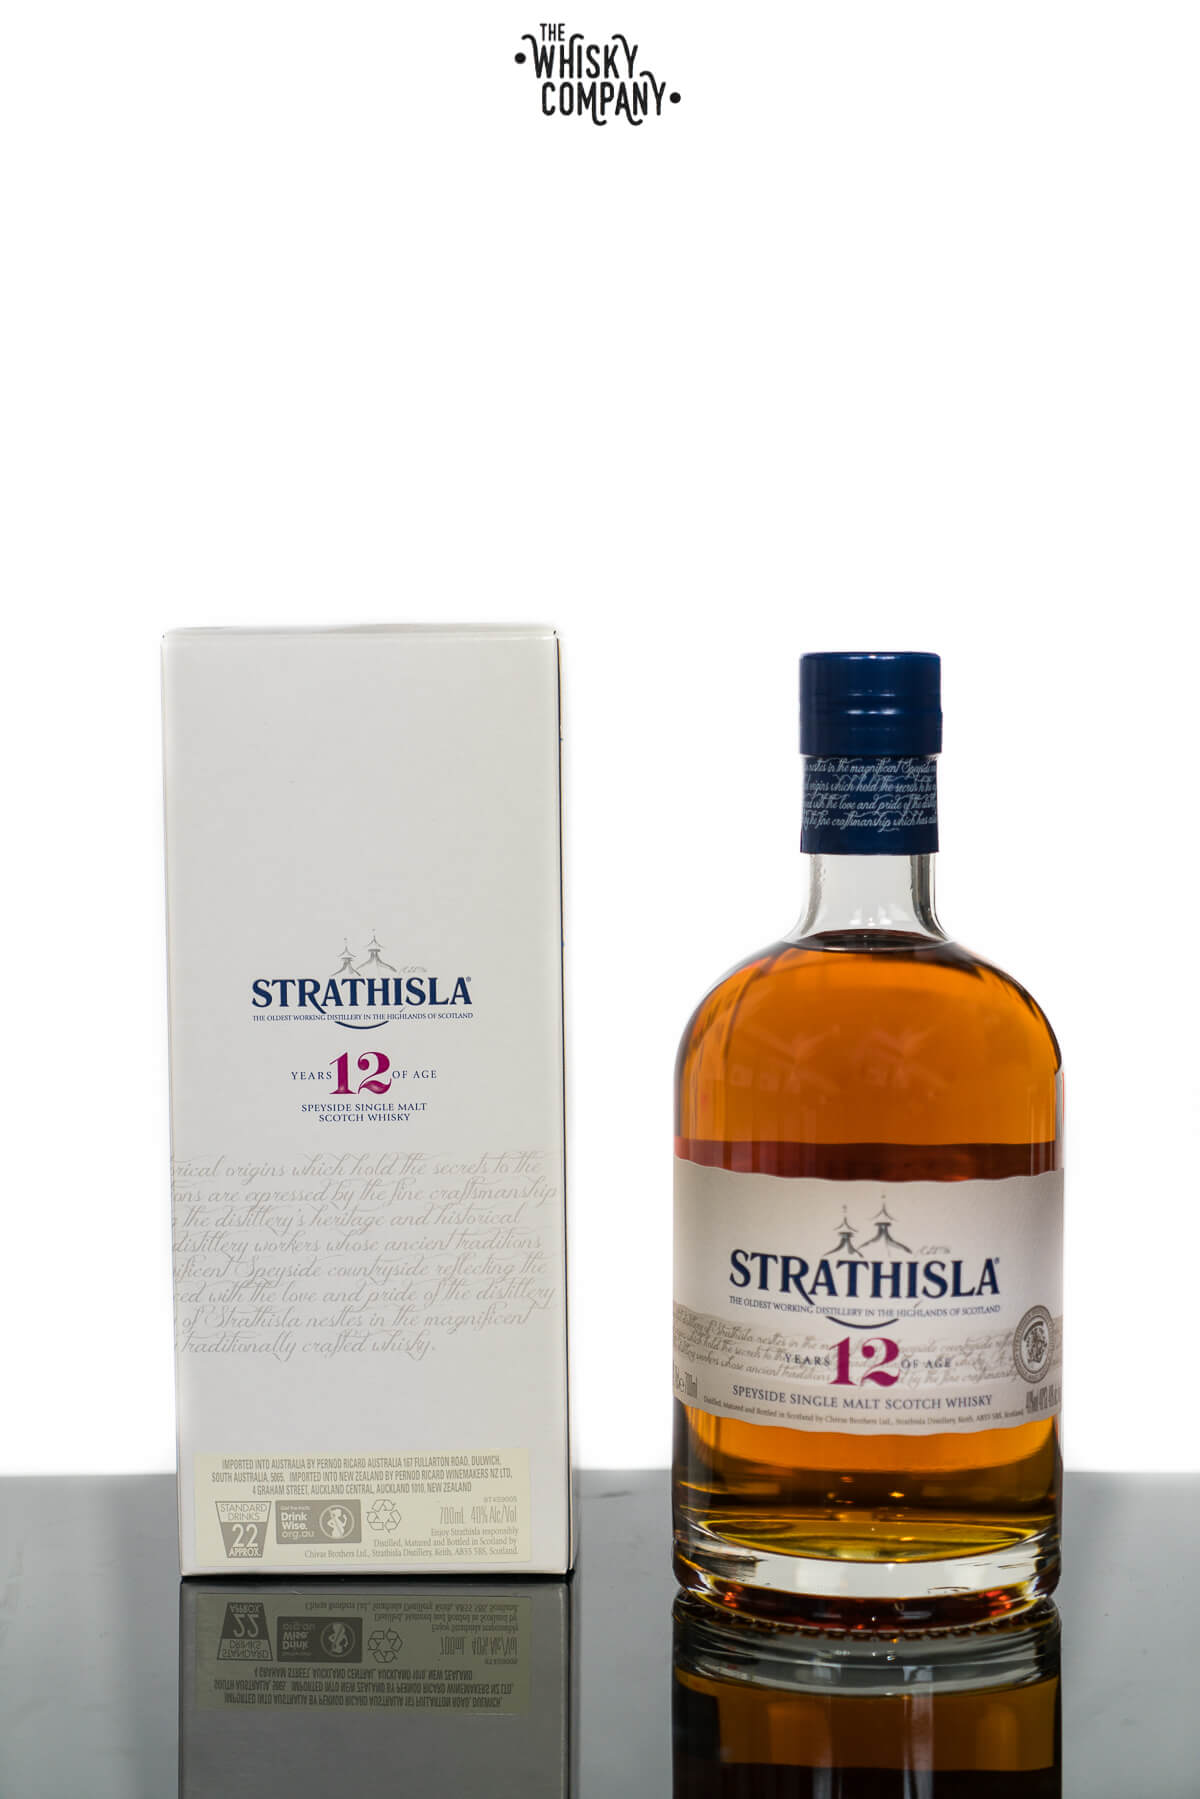 Strathisla Aged 12 Years Speyside Single Malt Scotch Whisky (700ml)